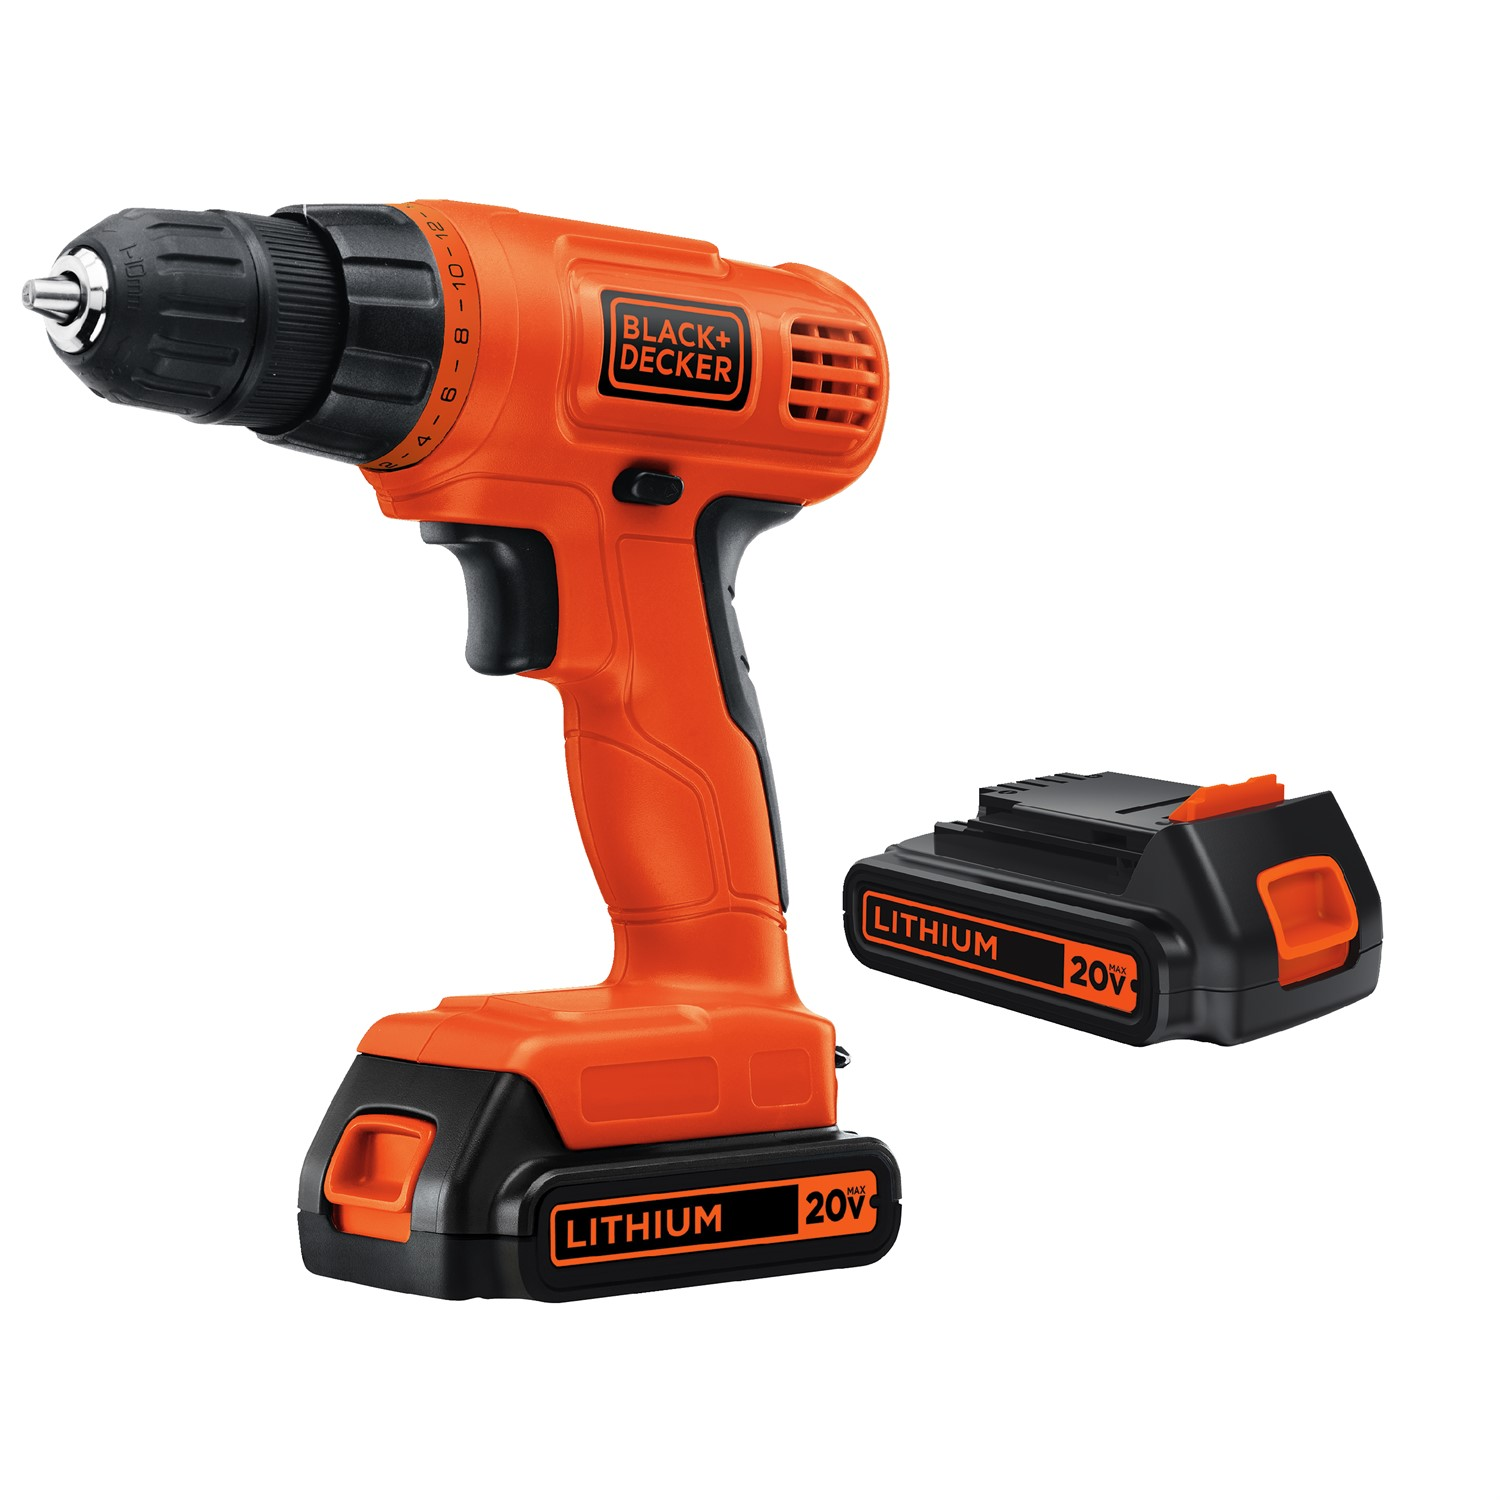 BLACK+DECKER 20-Volt MAX Lithium Ion Cordless Drill with 2 Batteries